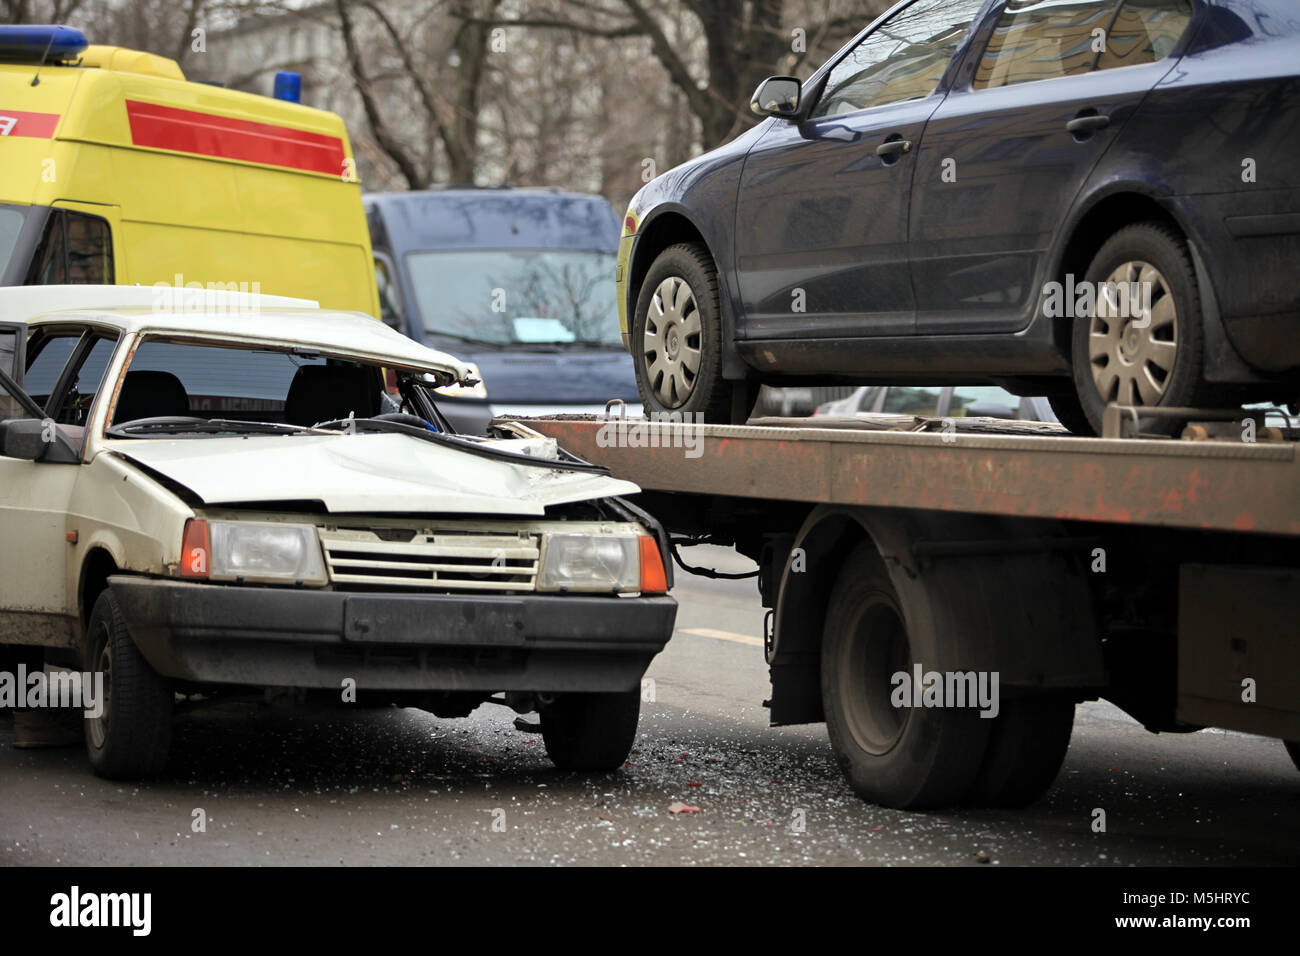 ñar accident passenger car and a tow truck - Stock Image